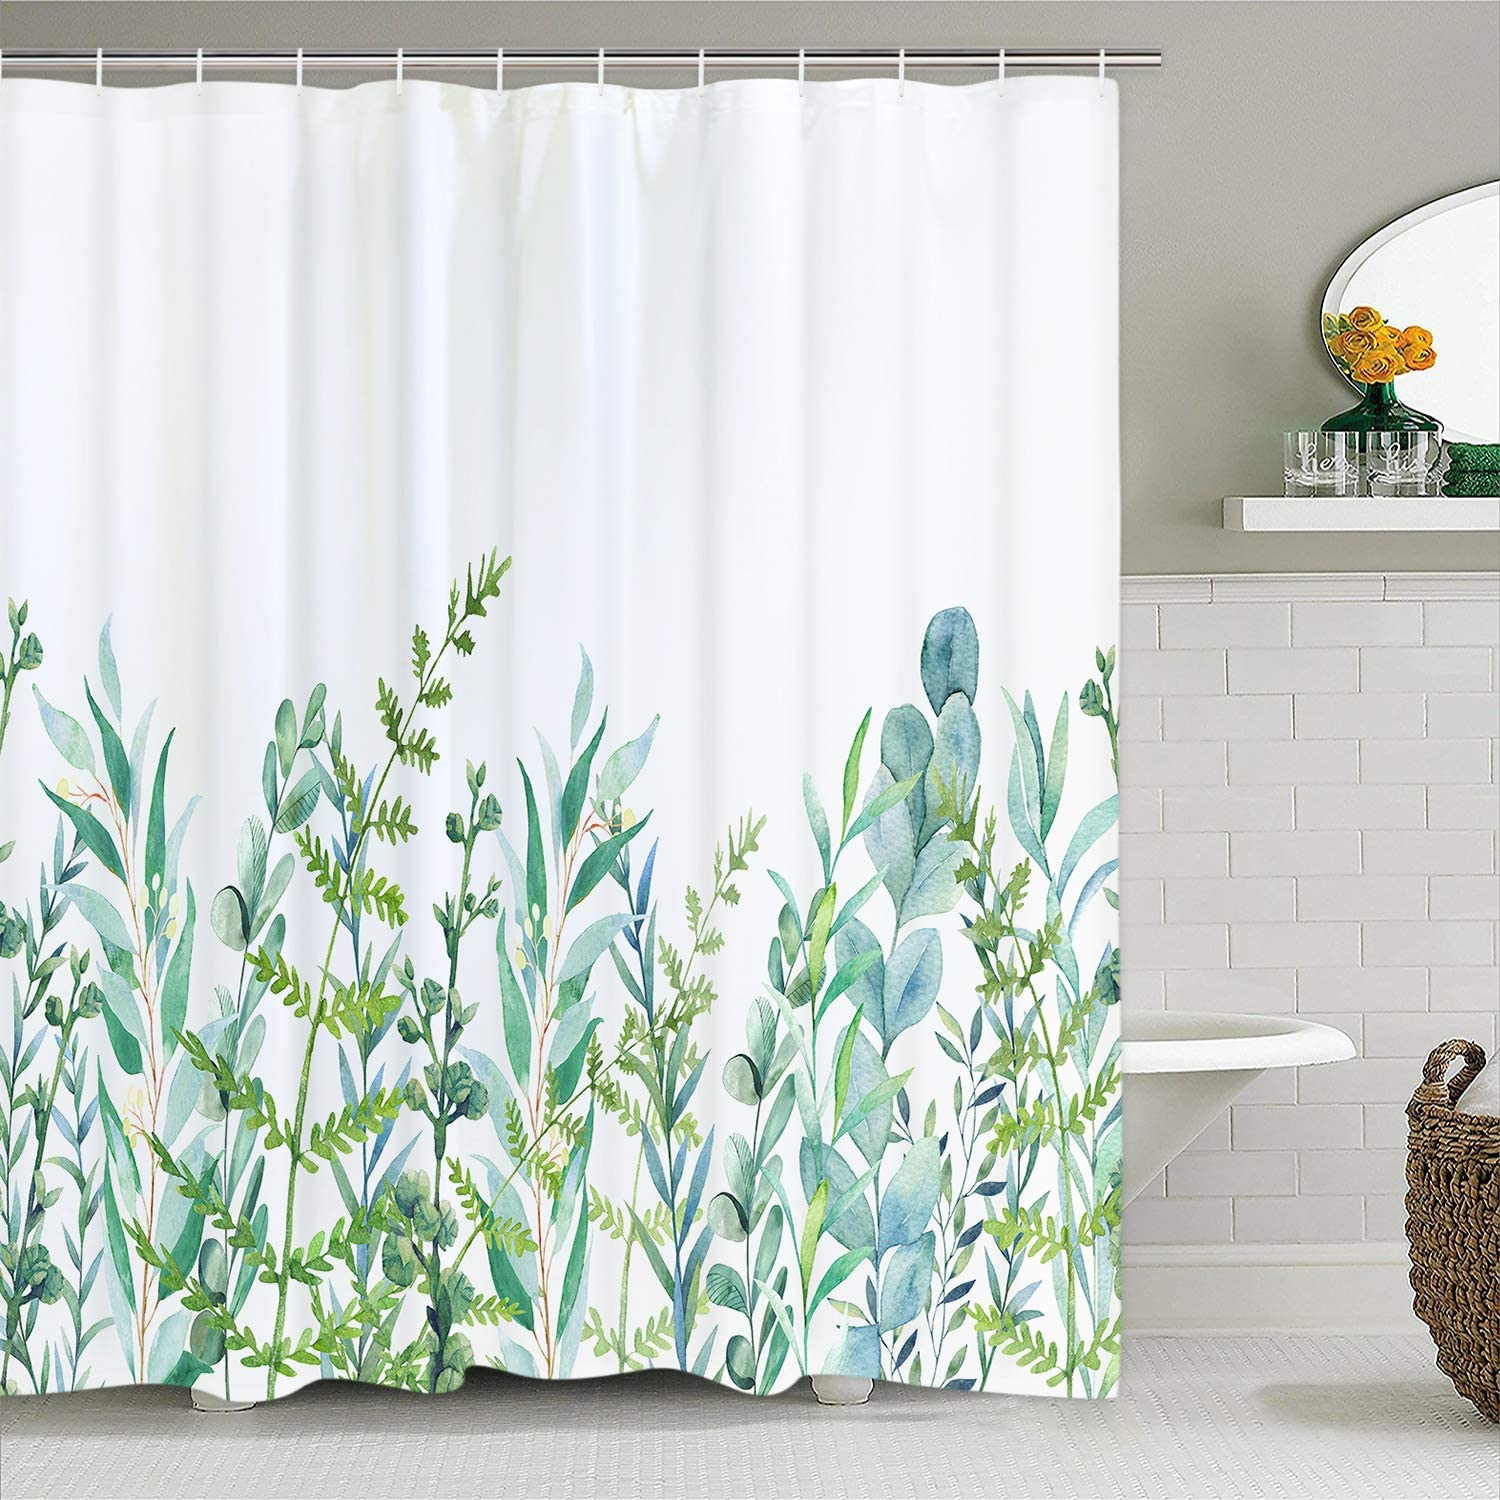 Alishomtll Botanical Shower Curtain Leaf Shower Curtain with 12 Hooks, Plant Floral Shower Curtain Nature Flower Shower Curtain for Bathroom